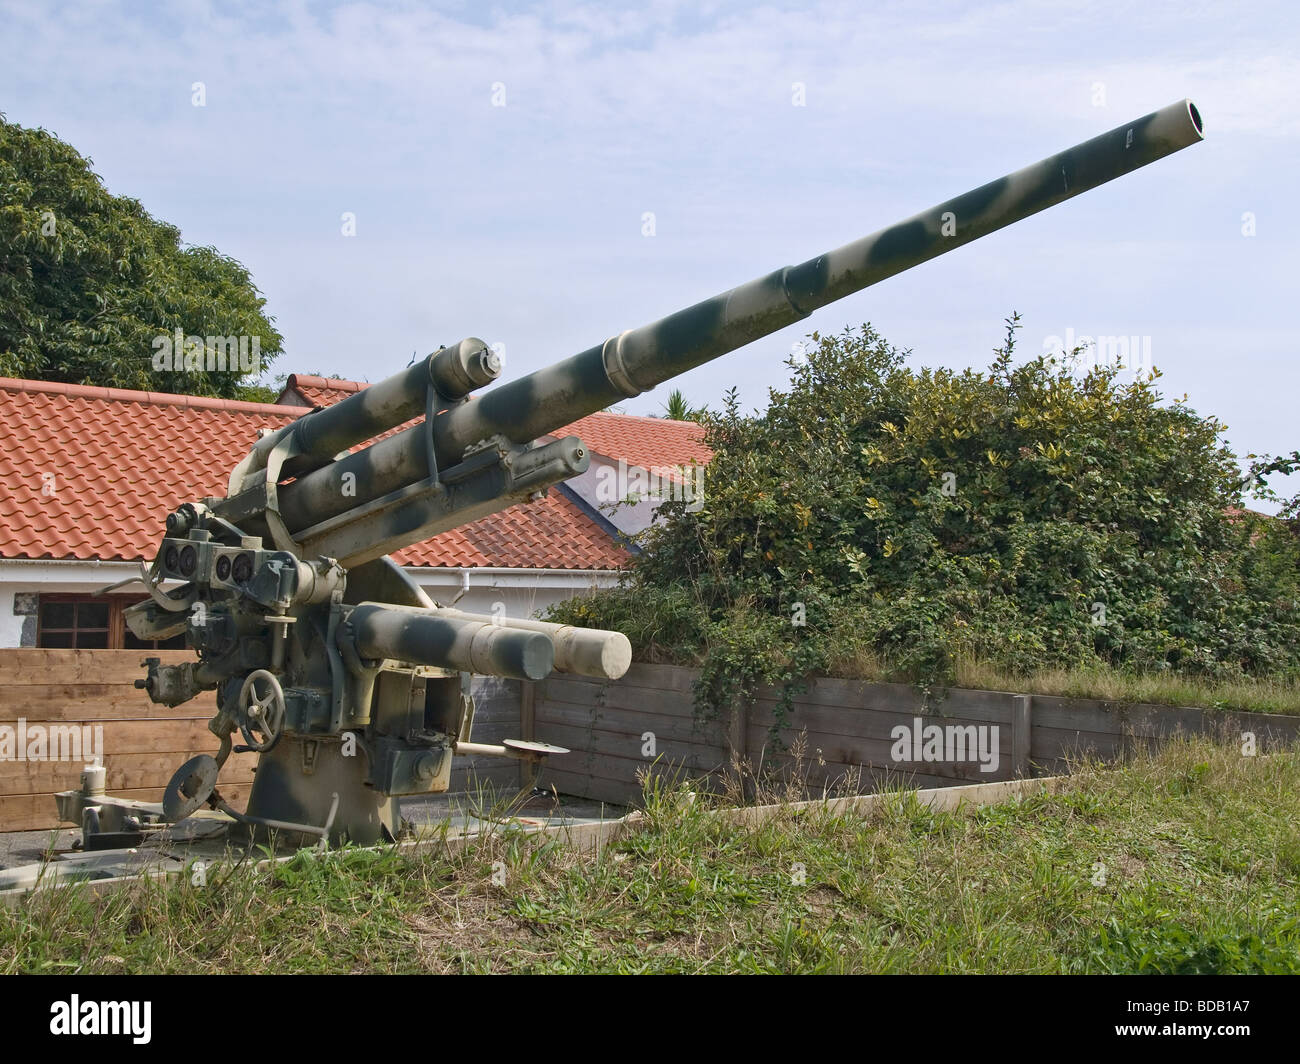 88mm flak 36 anti aircraft or anti tank gun at the german occupation